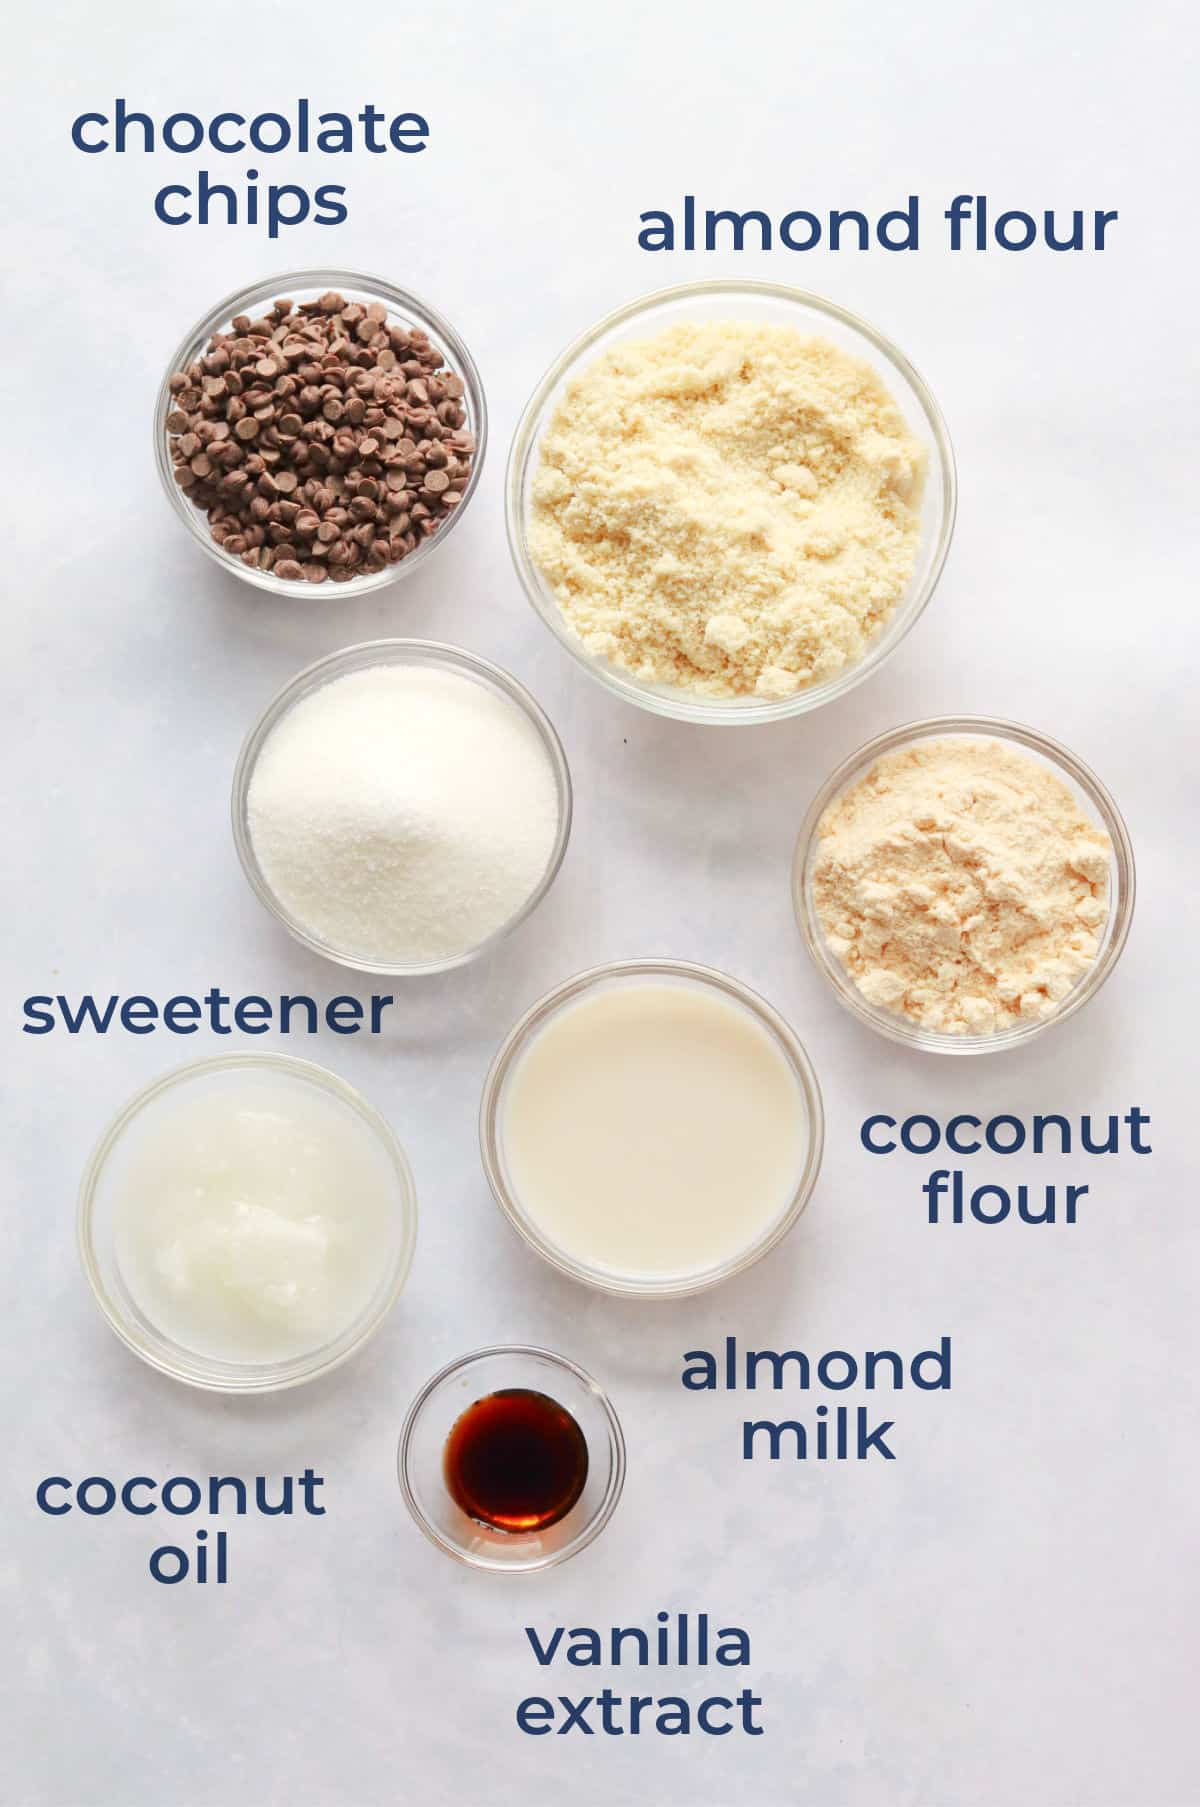 Ingredients for cookie dough bites - almond flour, coconut flour, chocolate chips, vanilla, sweetener